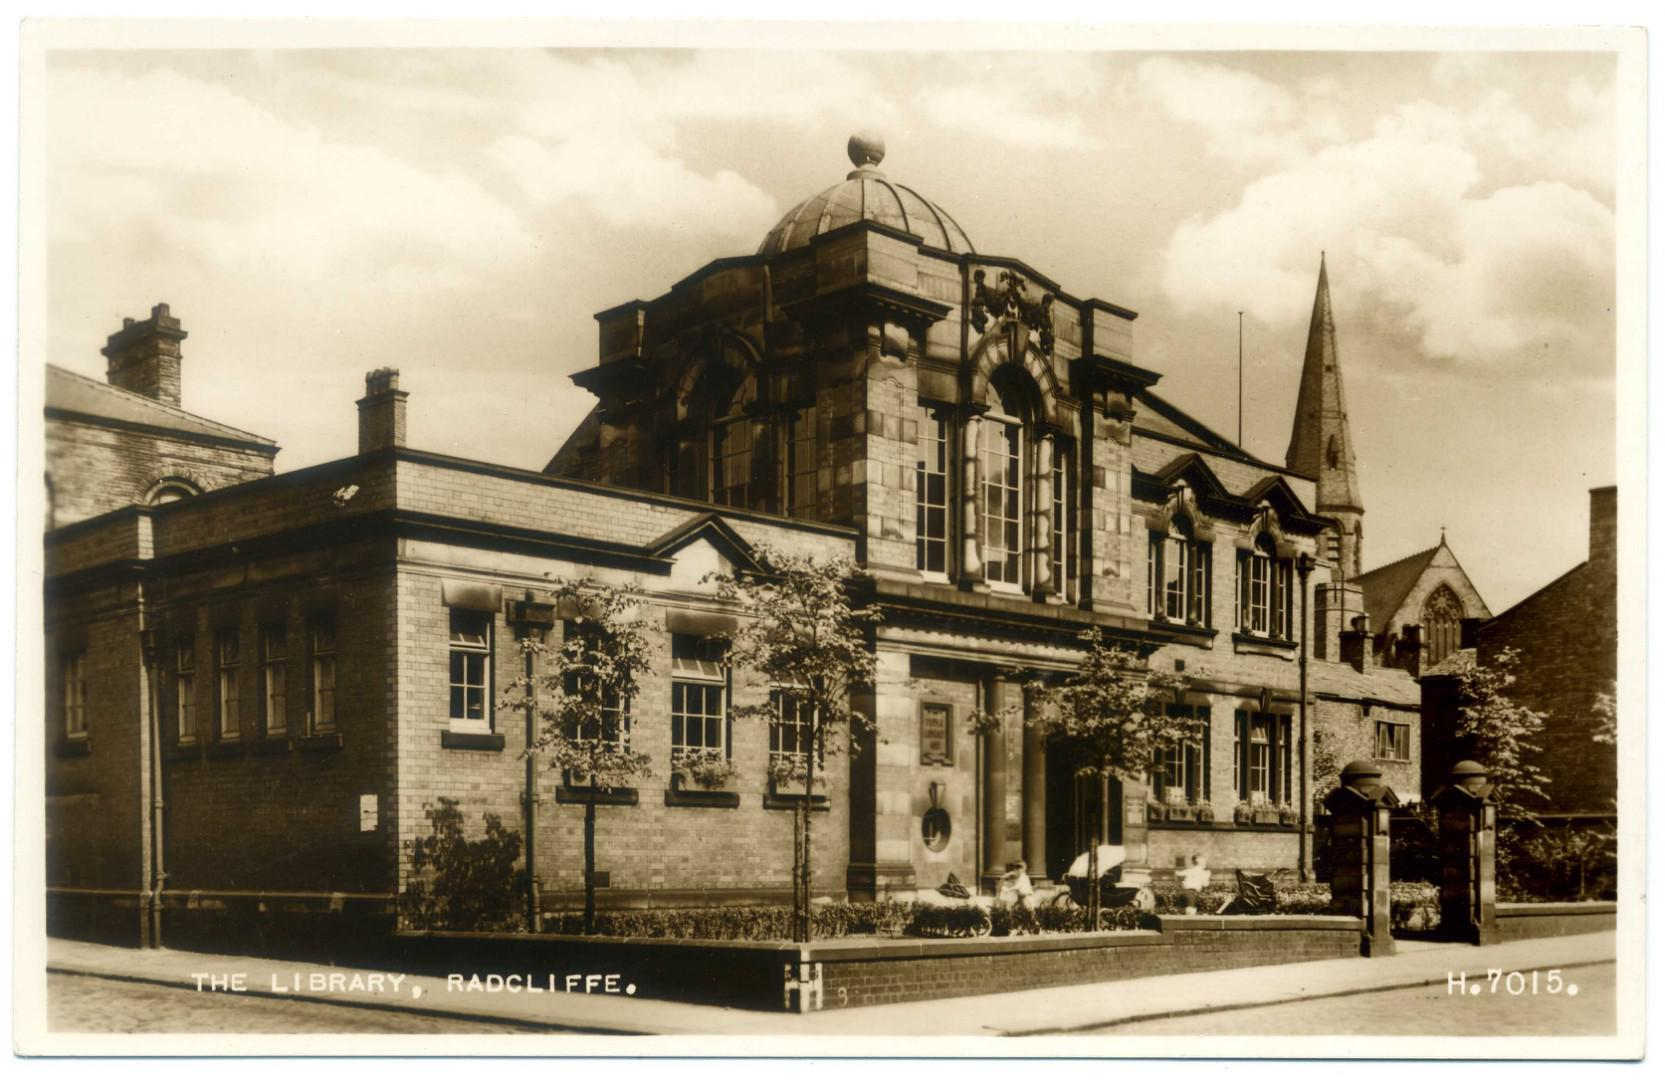 Radcliffe: Public Library